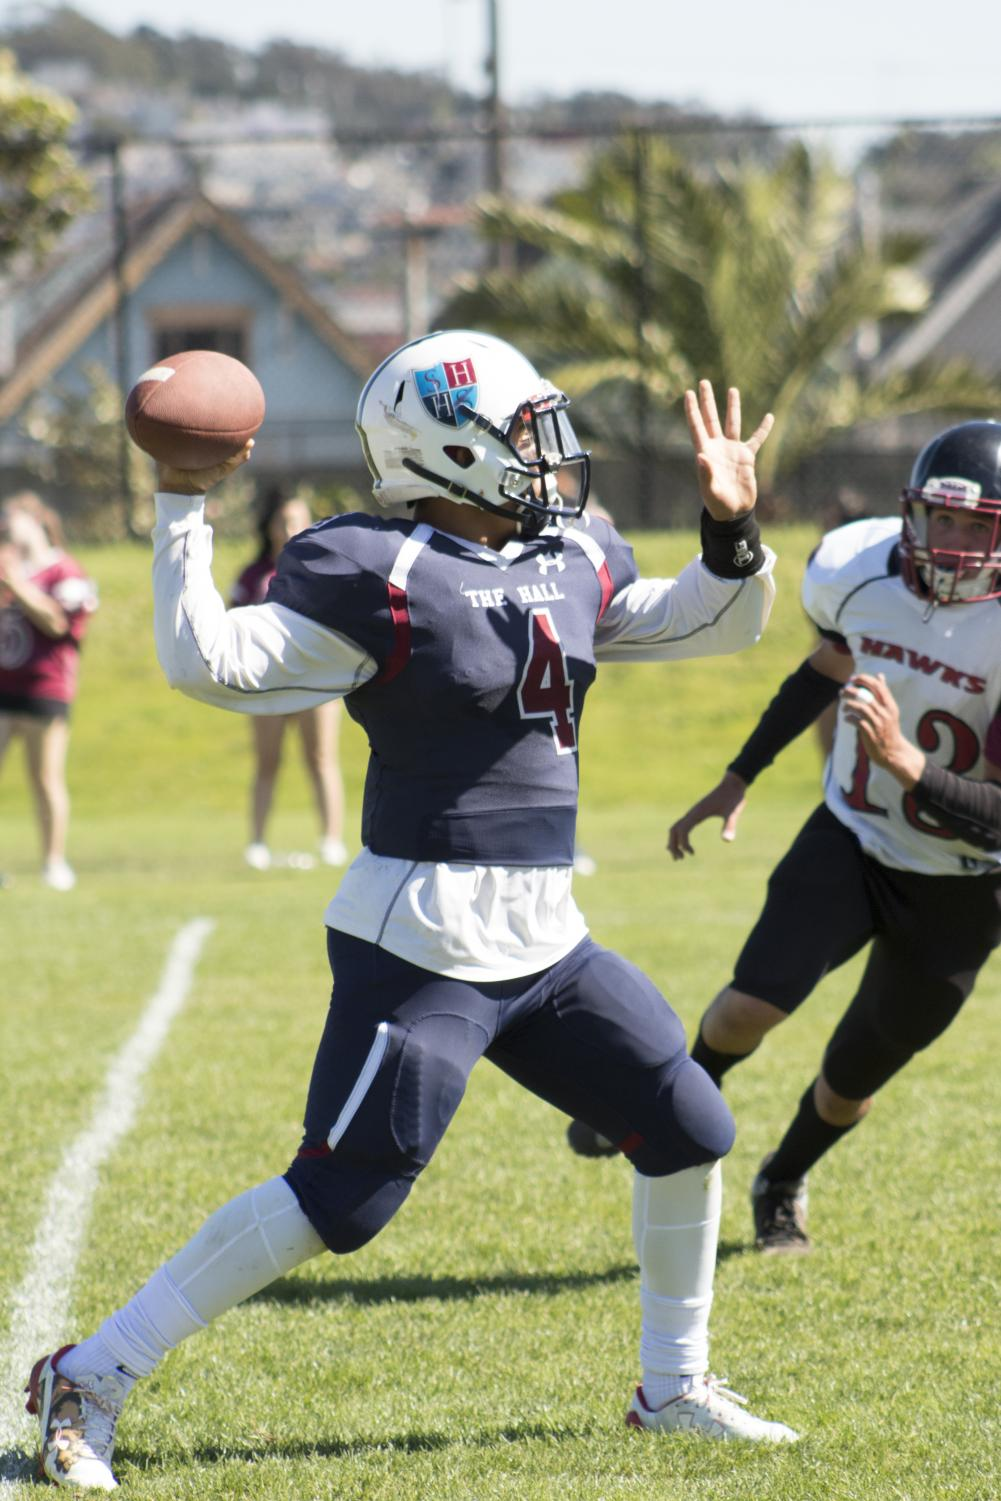 Jonathon Newsome '19 attempts a pass during a game earlier in the season.  Newsome started every game at quaterback for The Hall this season.